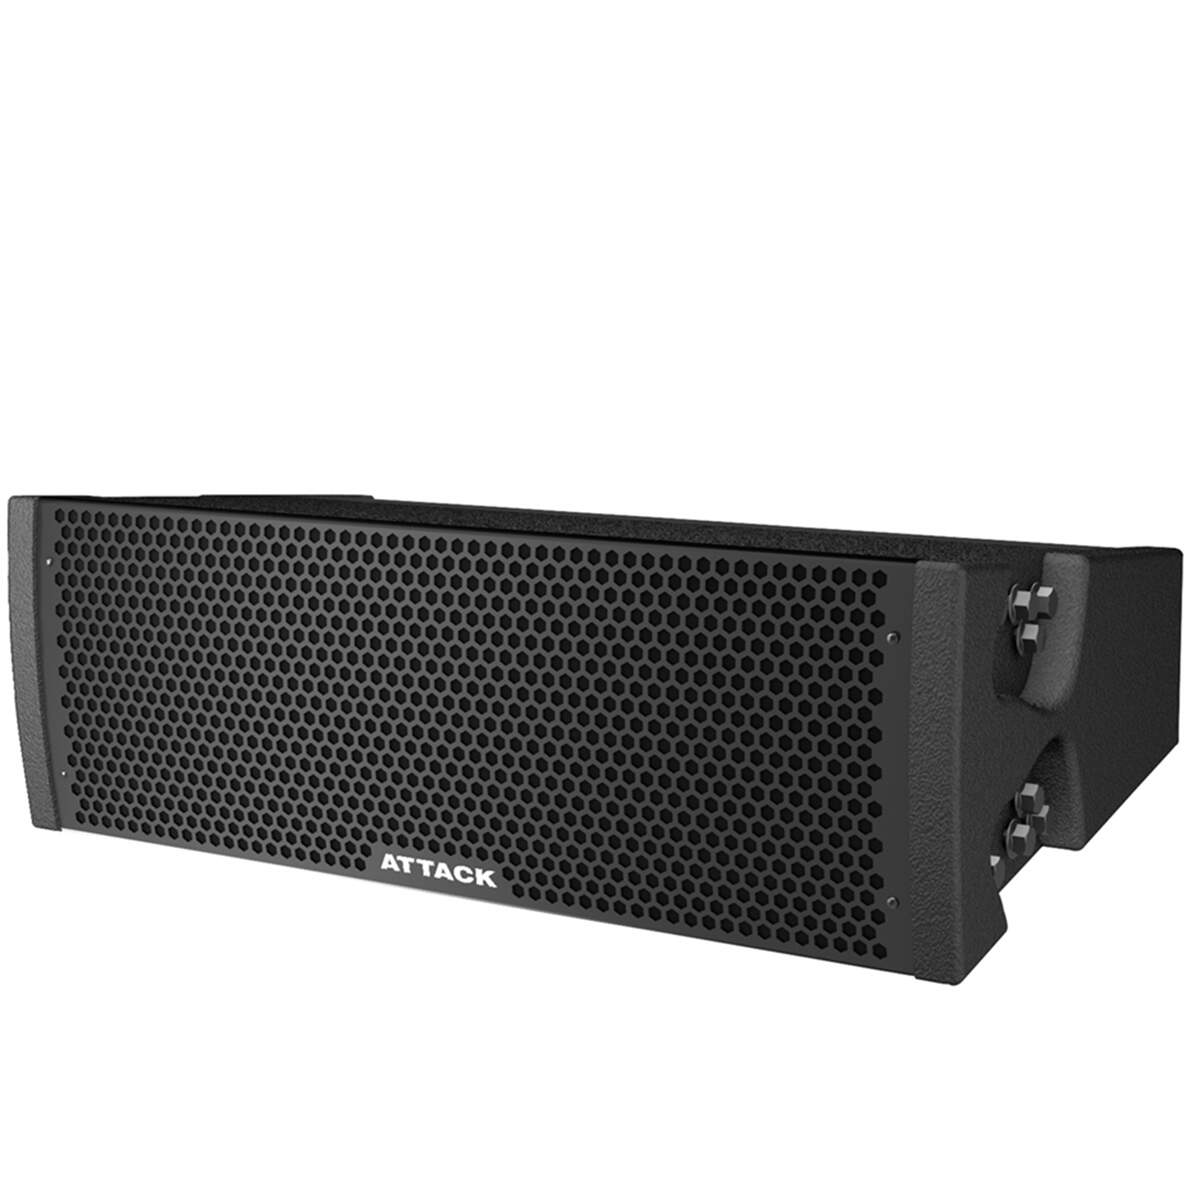 Versa Vertical Array Attack VRV206A